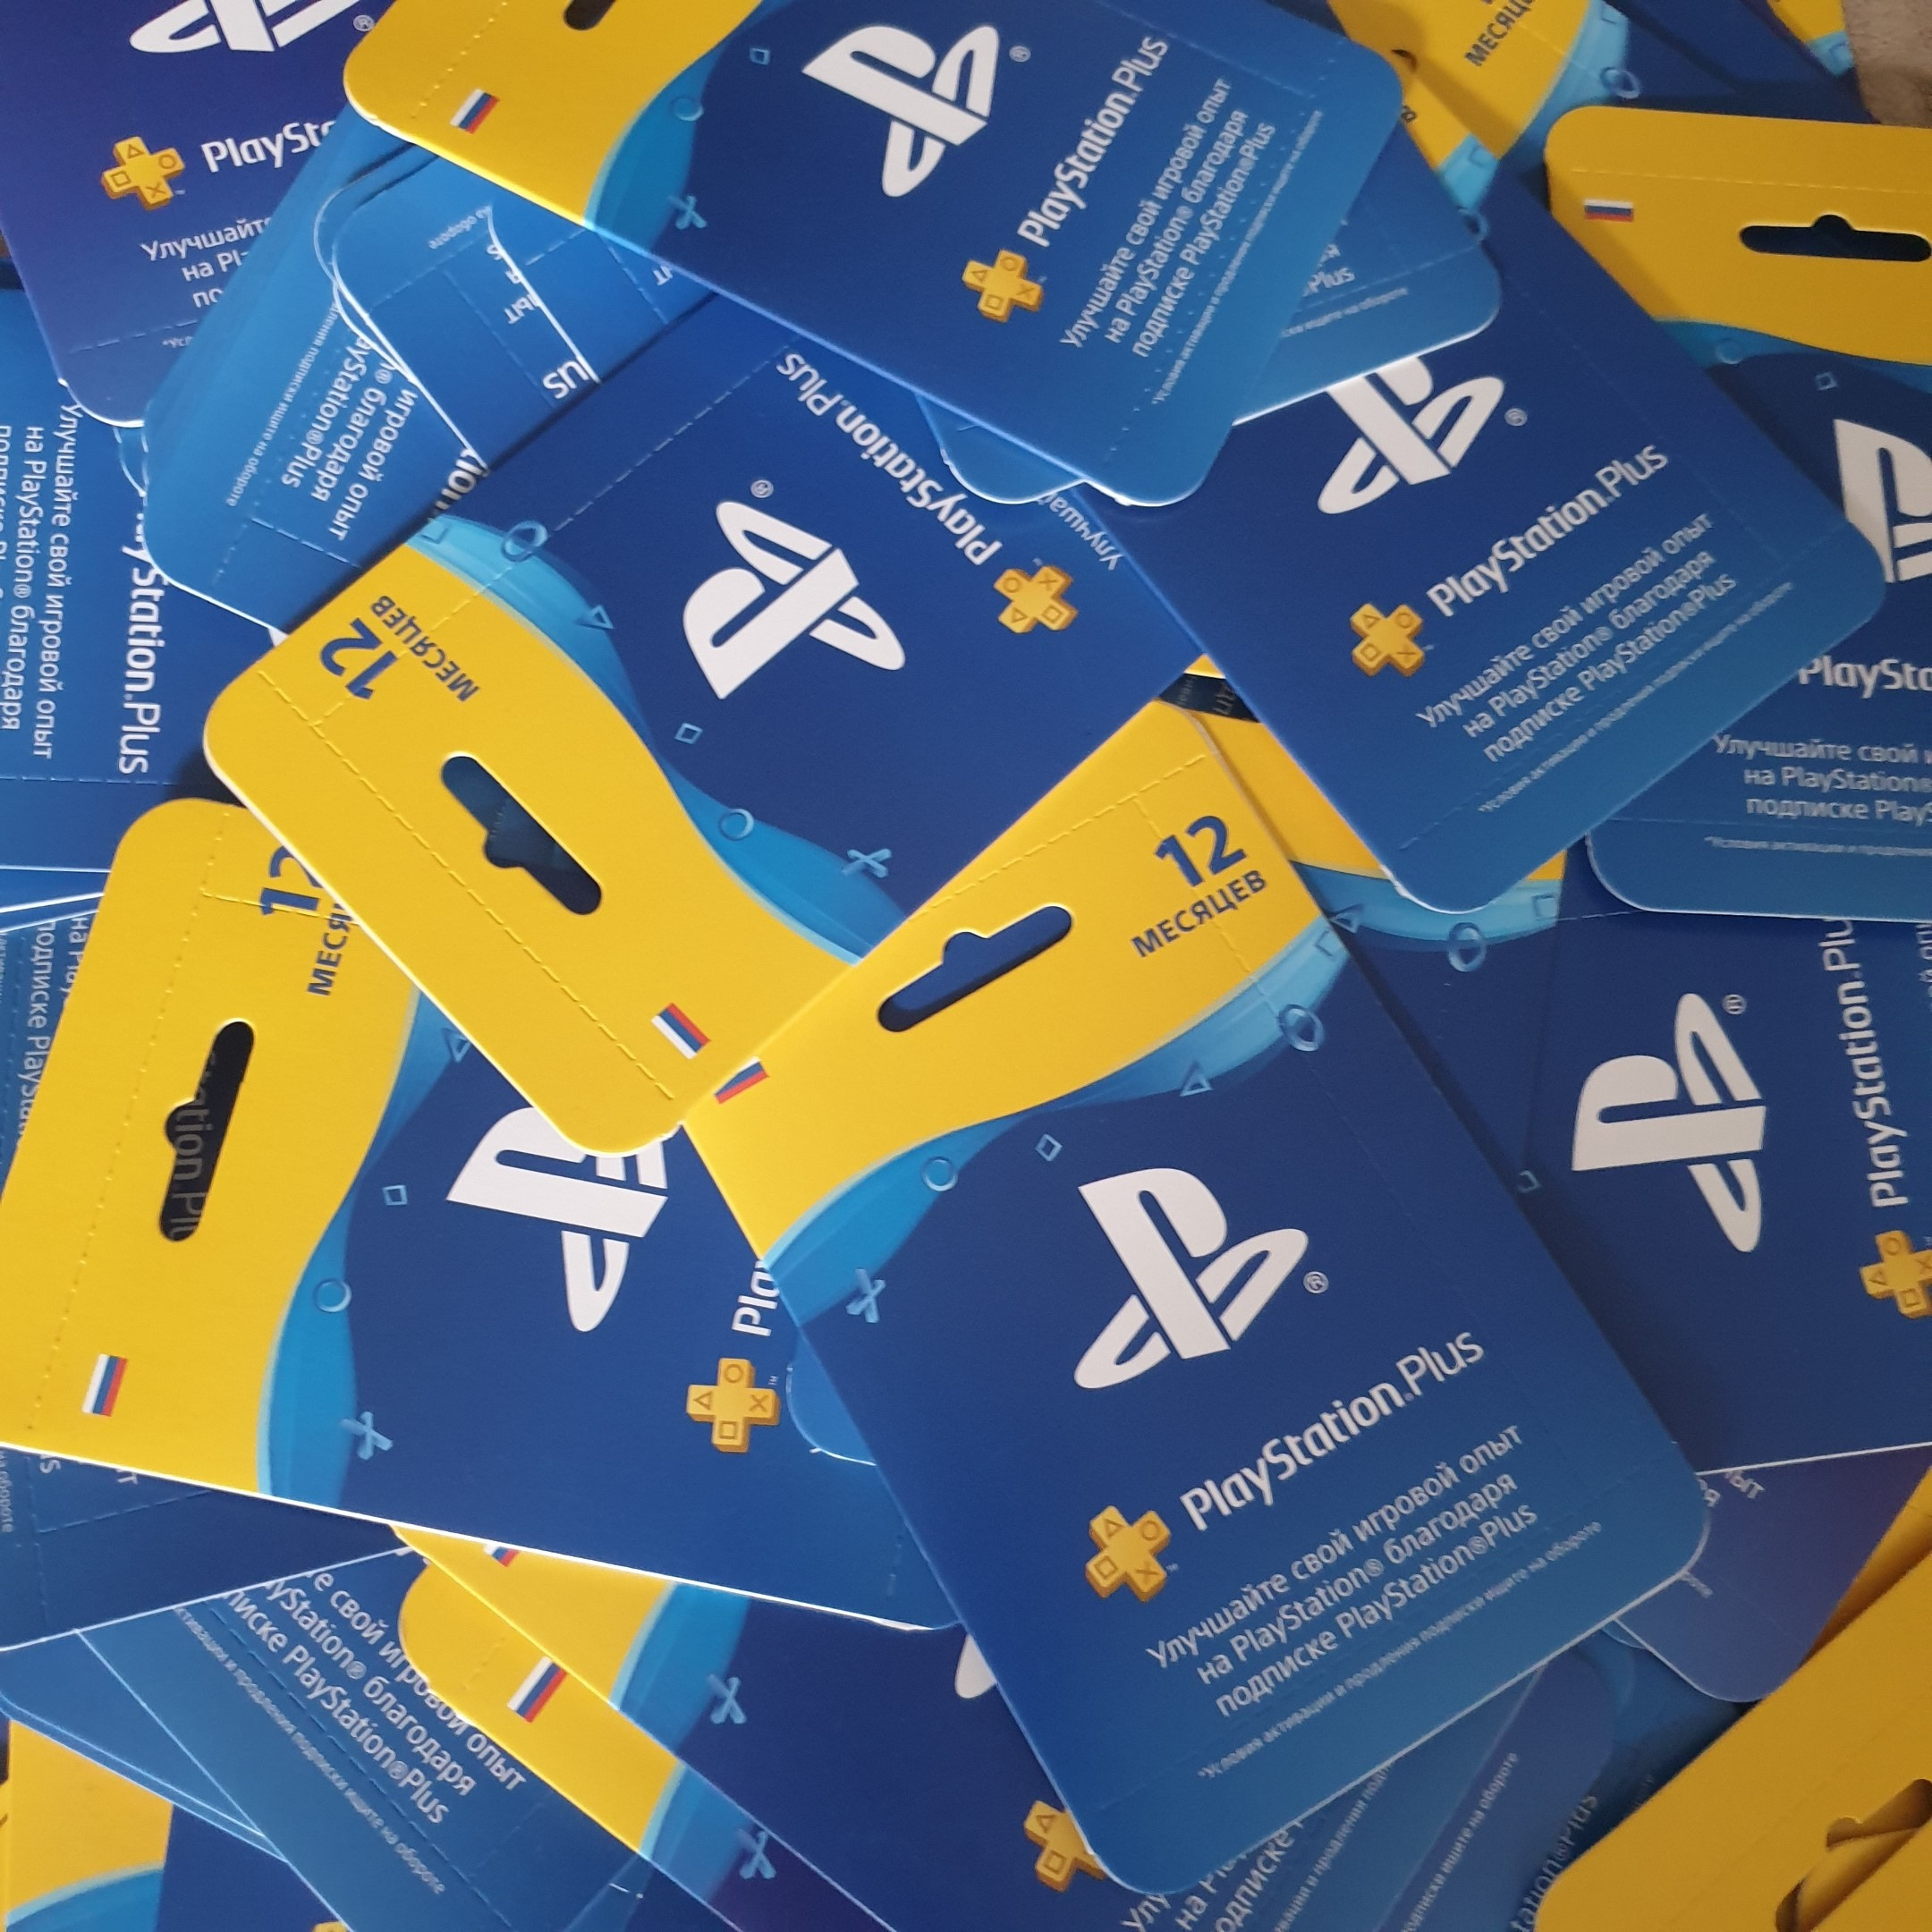 PS Plus 365 days / 1 year / Playstation Plus 12 months